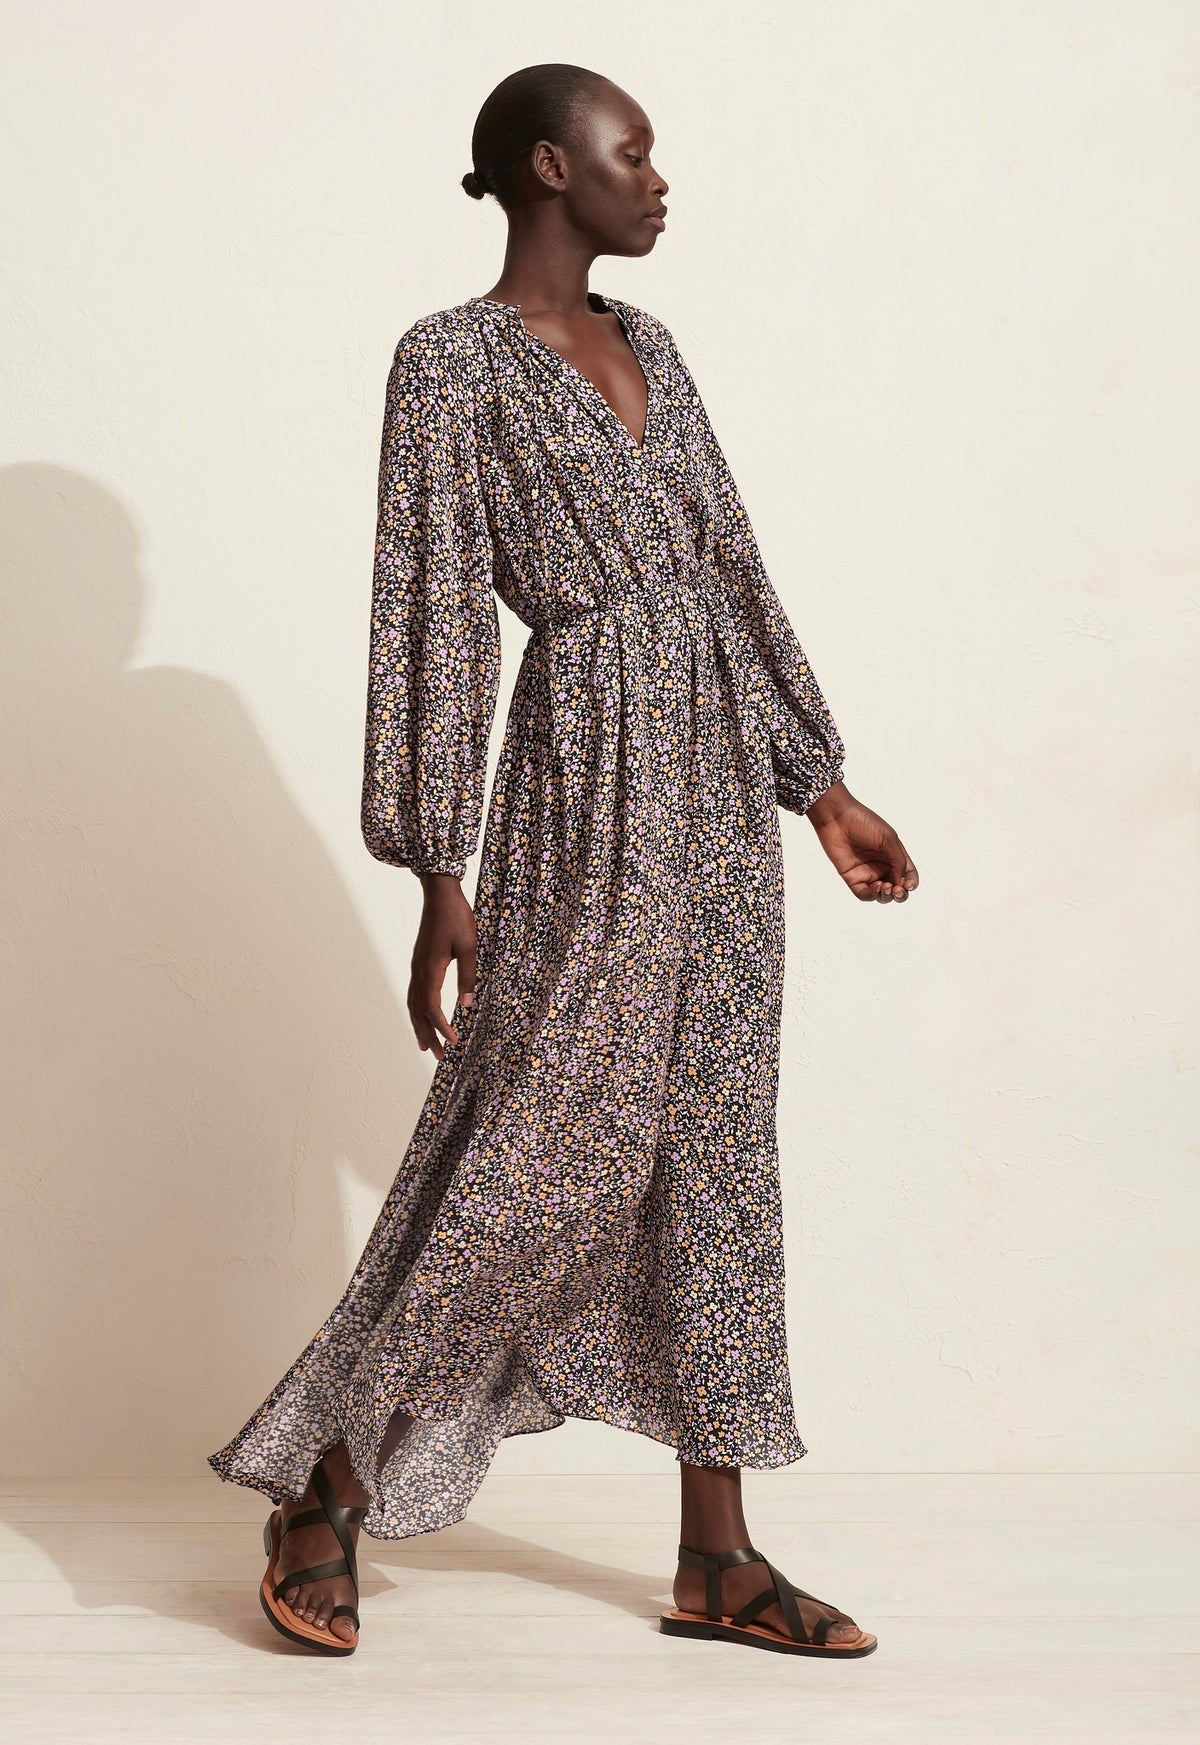 The Voluminous Tunic Dress